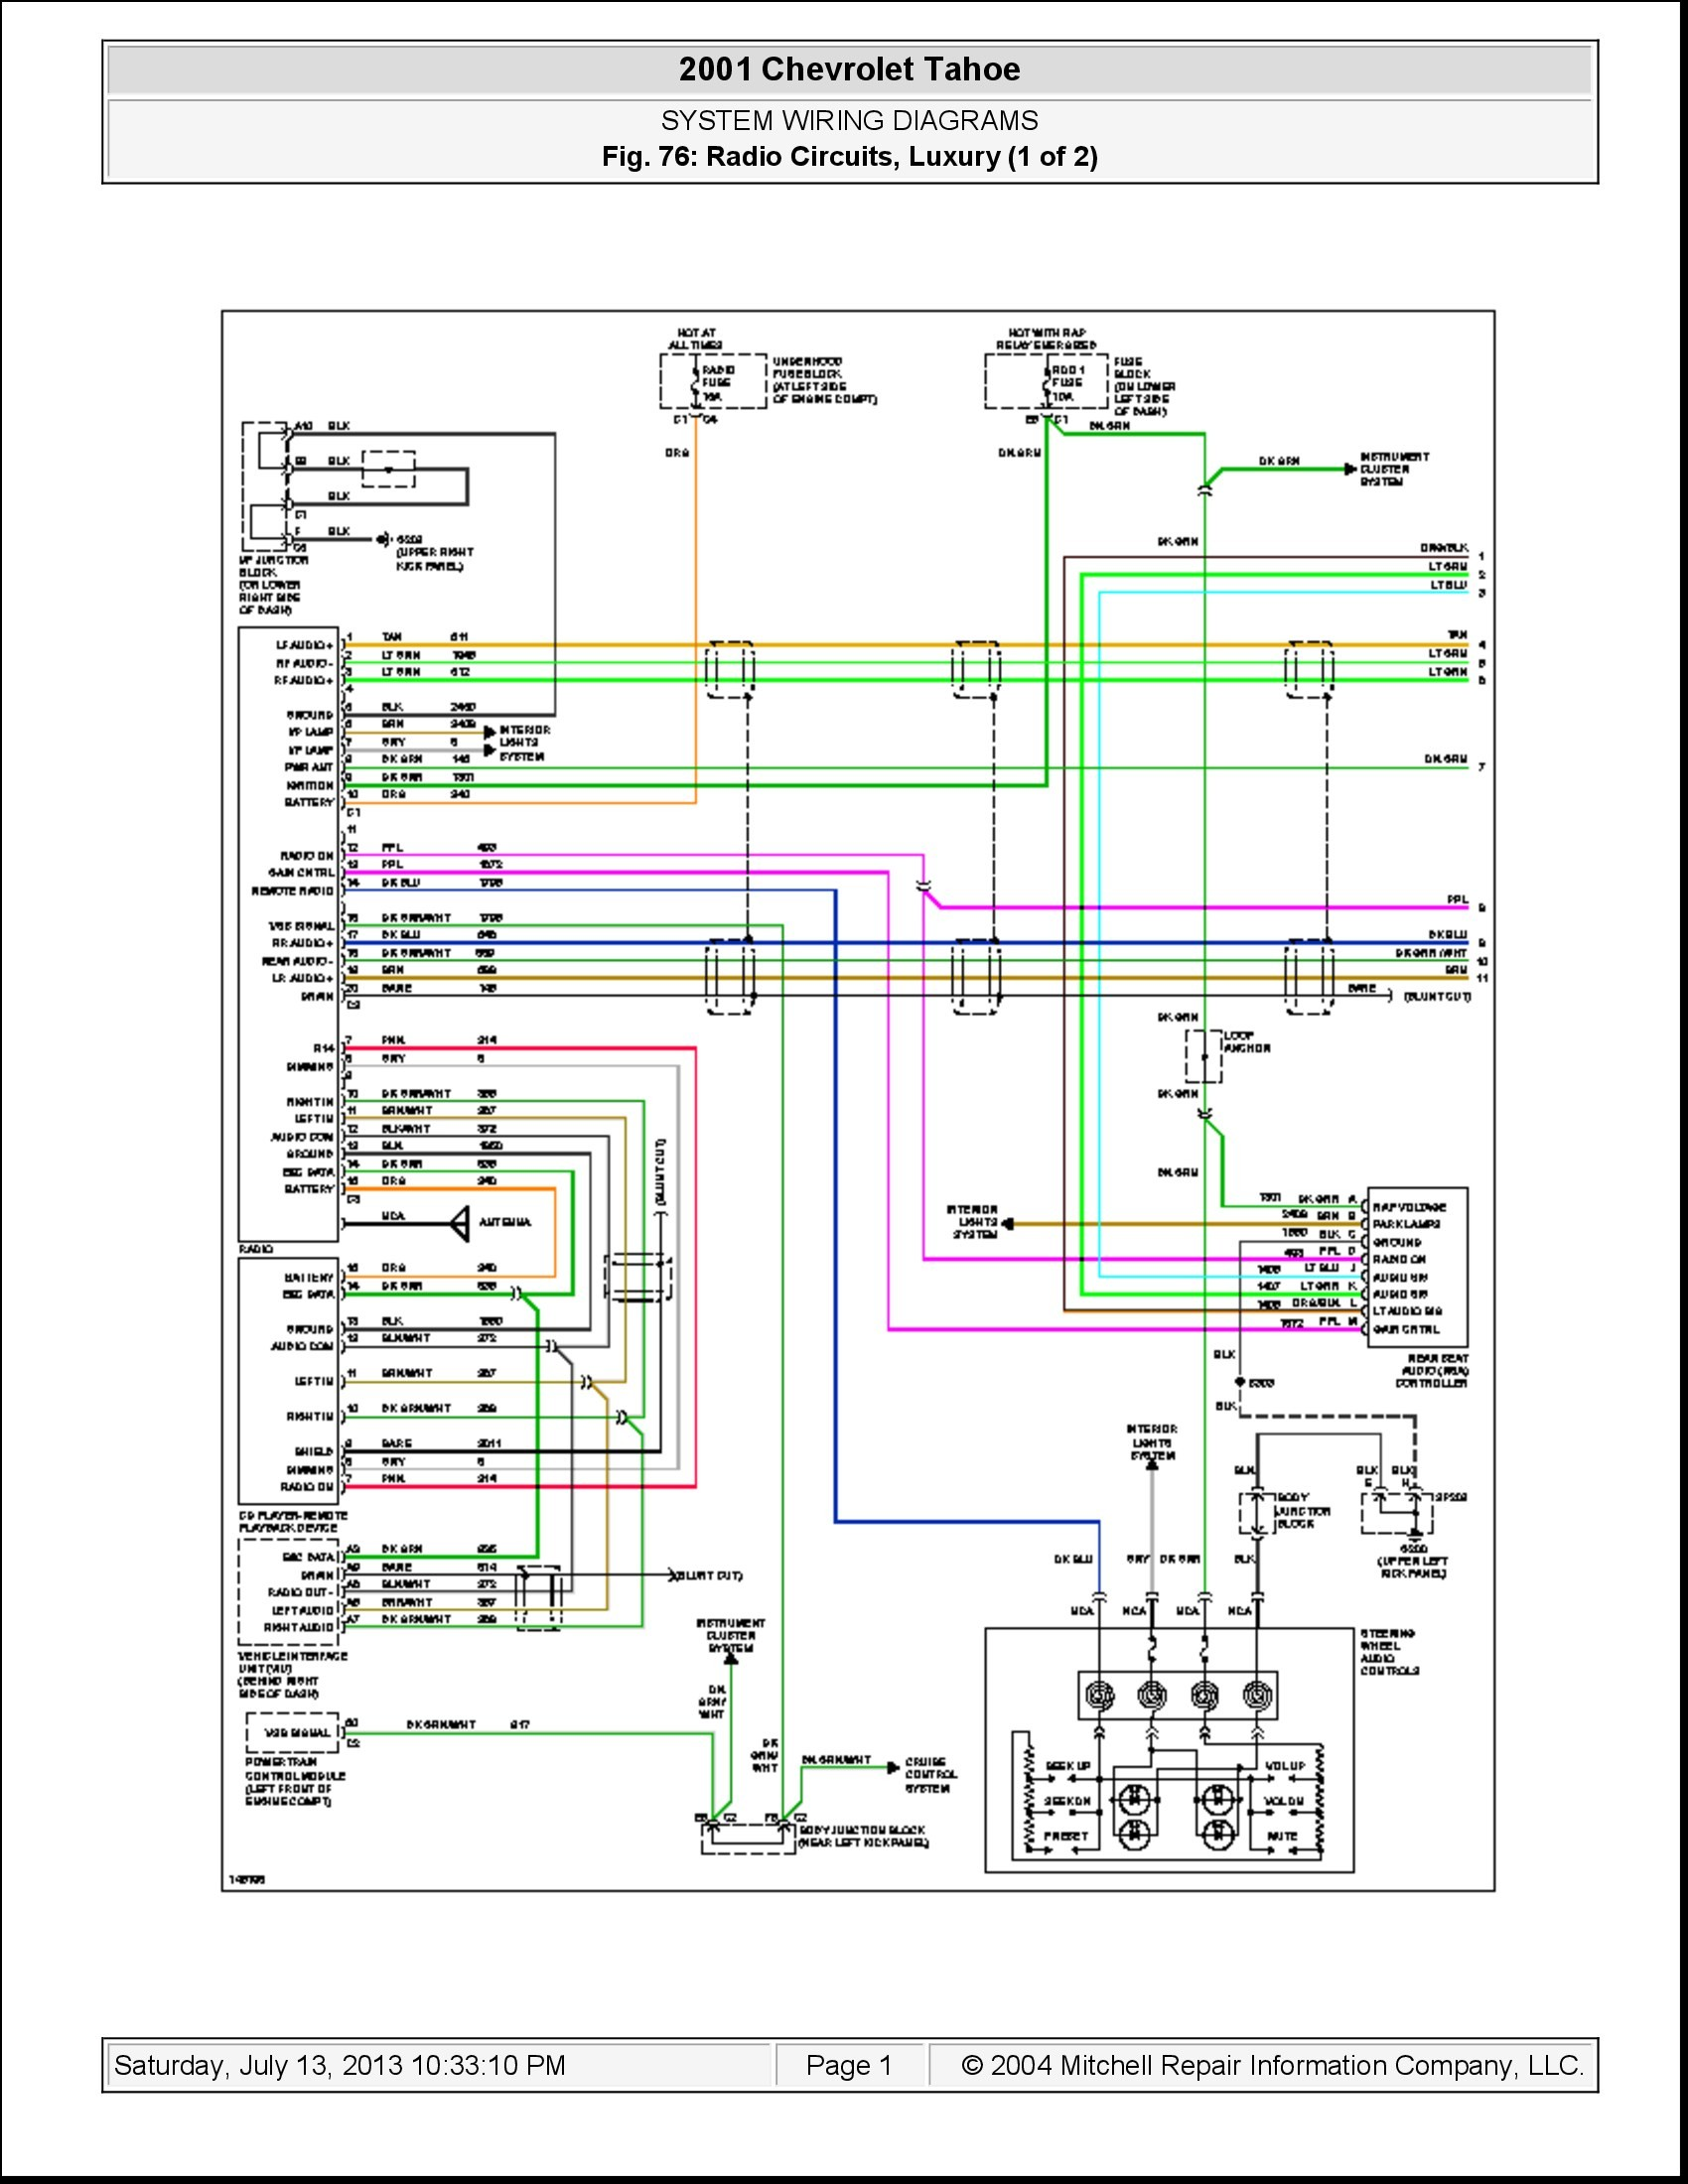 1995 Chevy Tahoe Ac Wiring Diagram